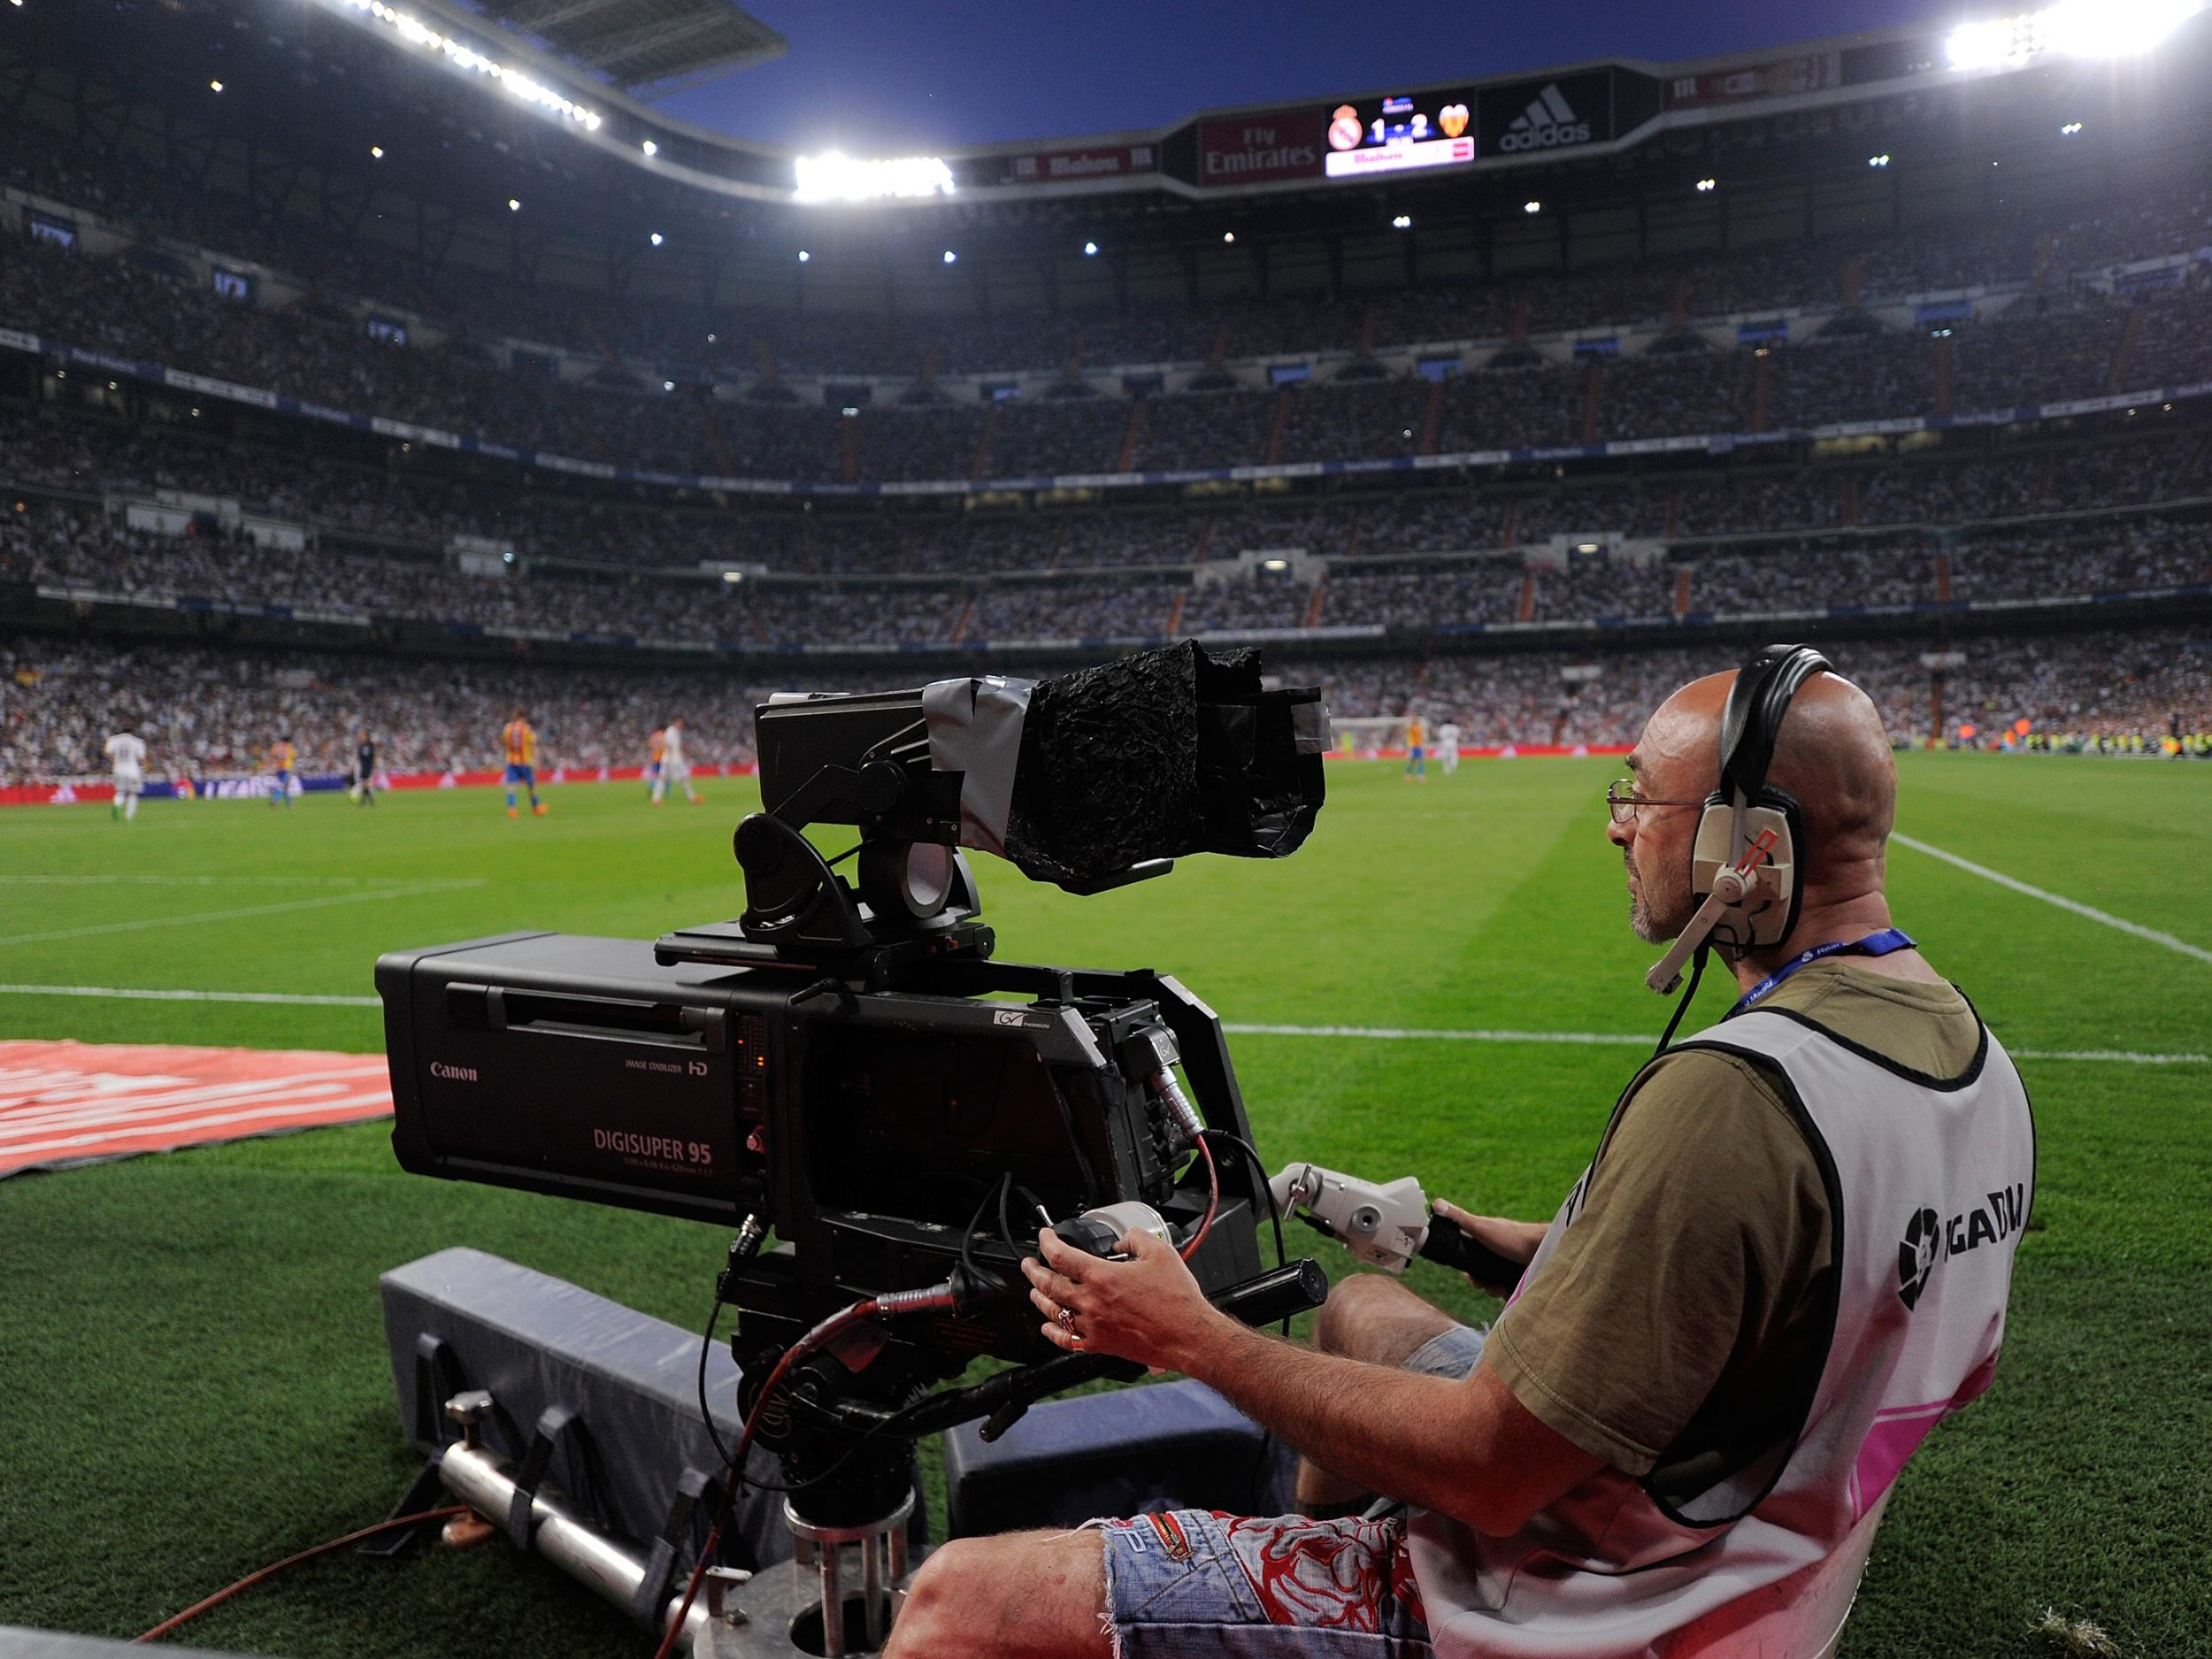 Eleven Sports back down over TV blackout but say current